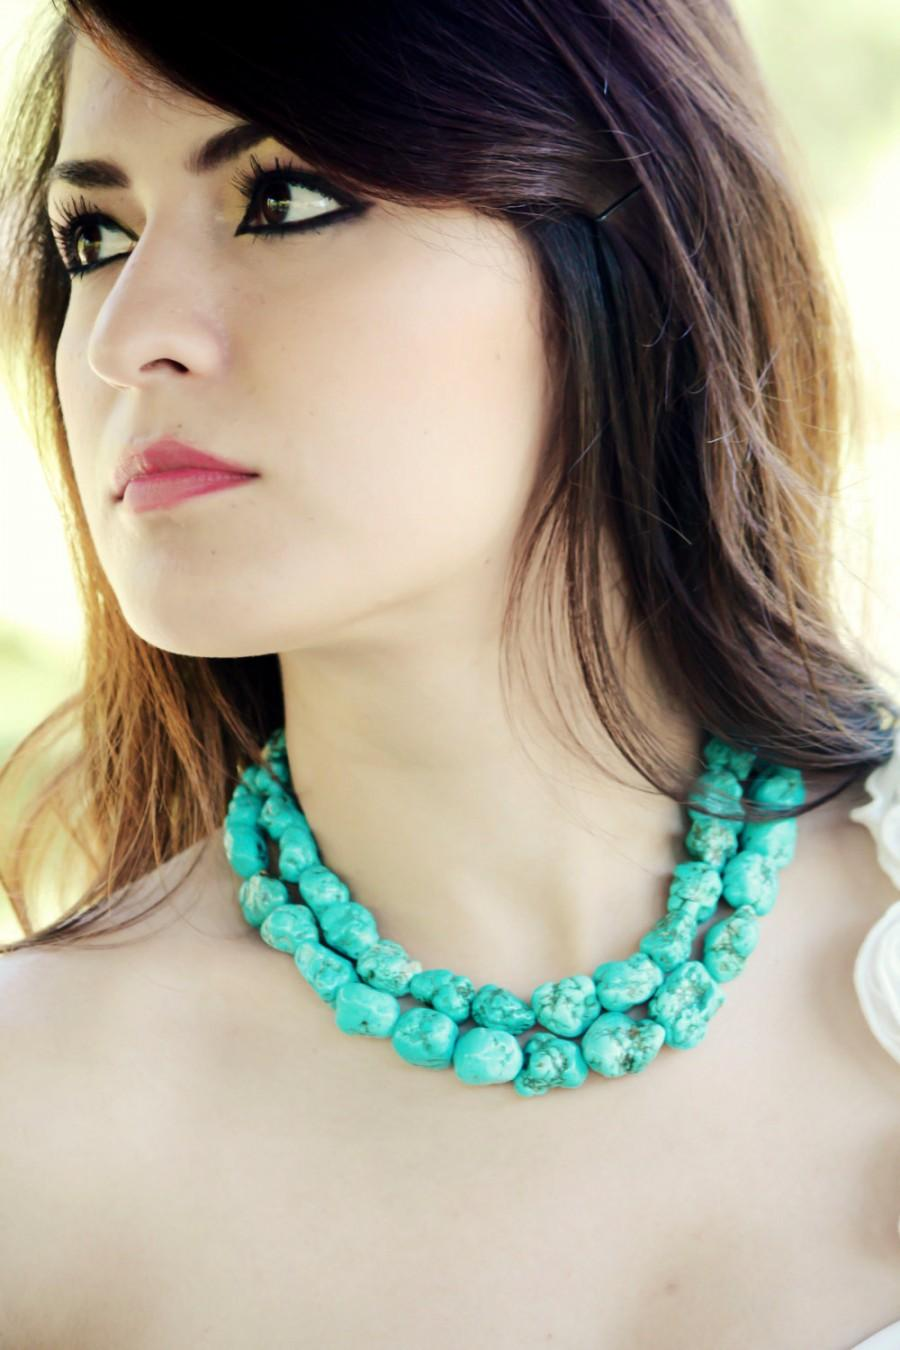 Hochzeit - Megan turquoise necklace chunky turquoise necklace statement necklace